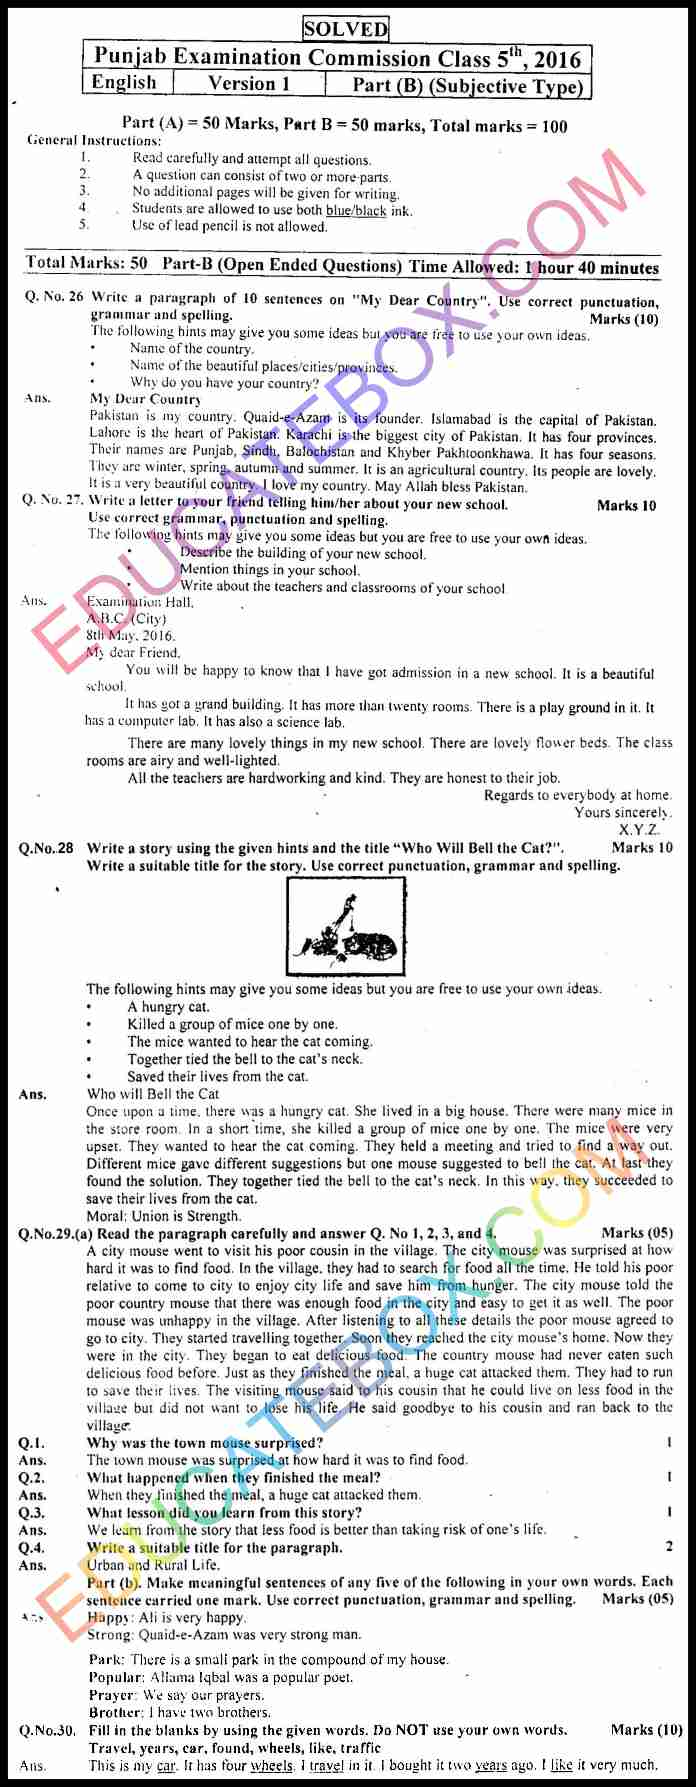 Past Paper English 5th Class 2016 Punjab Board (PEC) Solved Paper Subjective Type Version 1 - Page3